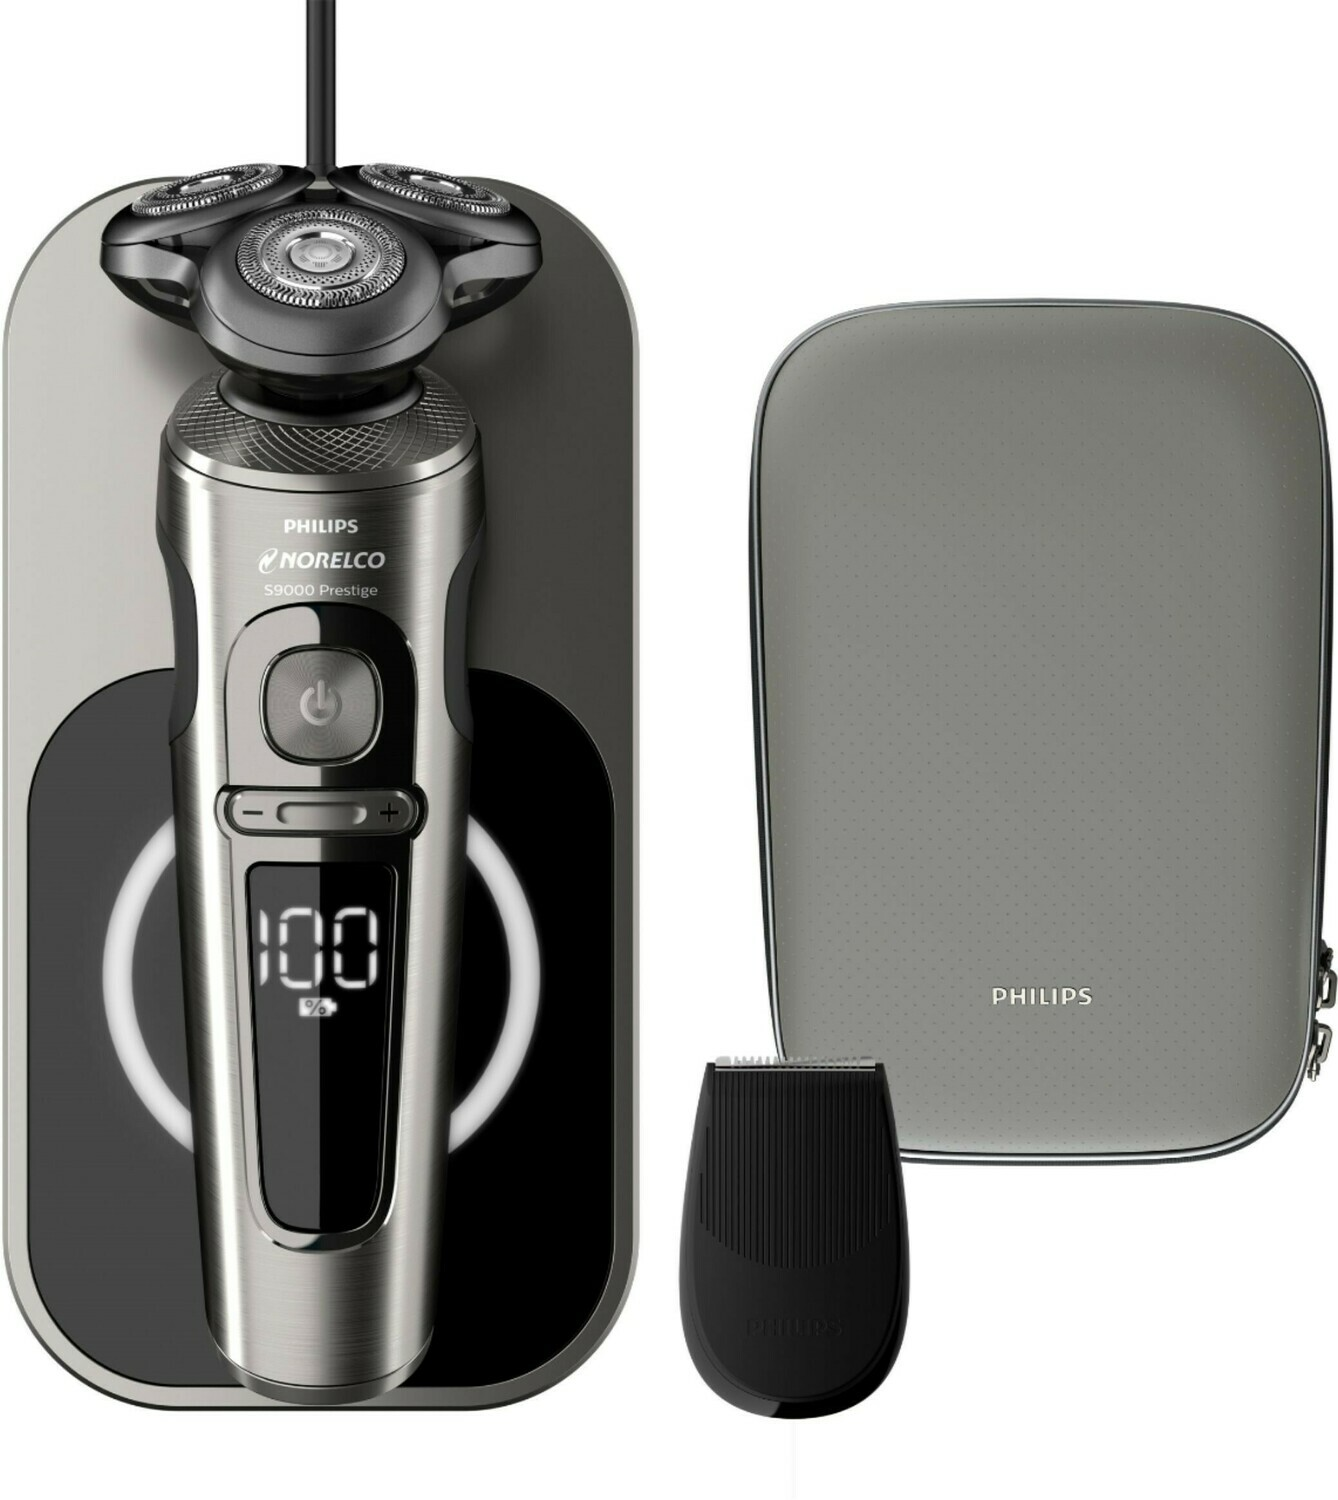 Philips Norelco - S9000 Prestige Qi-Charge Electric Shaver - Dark Brushed Chrome